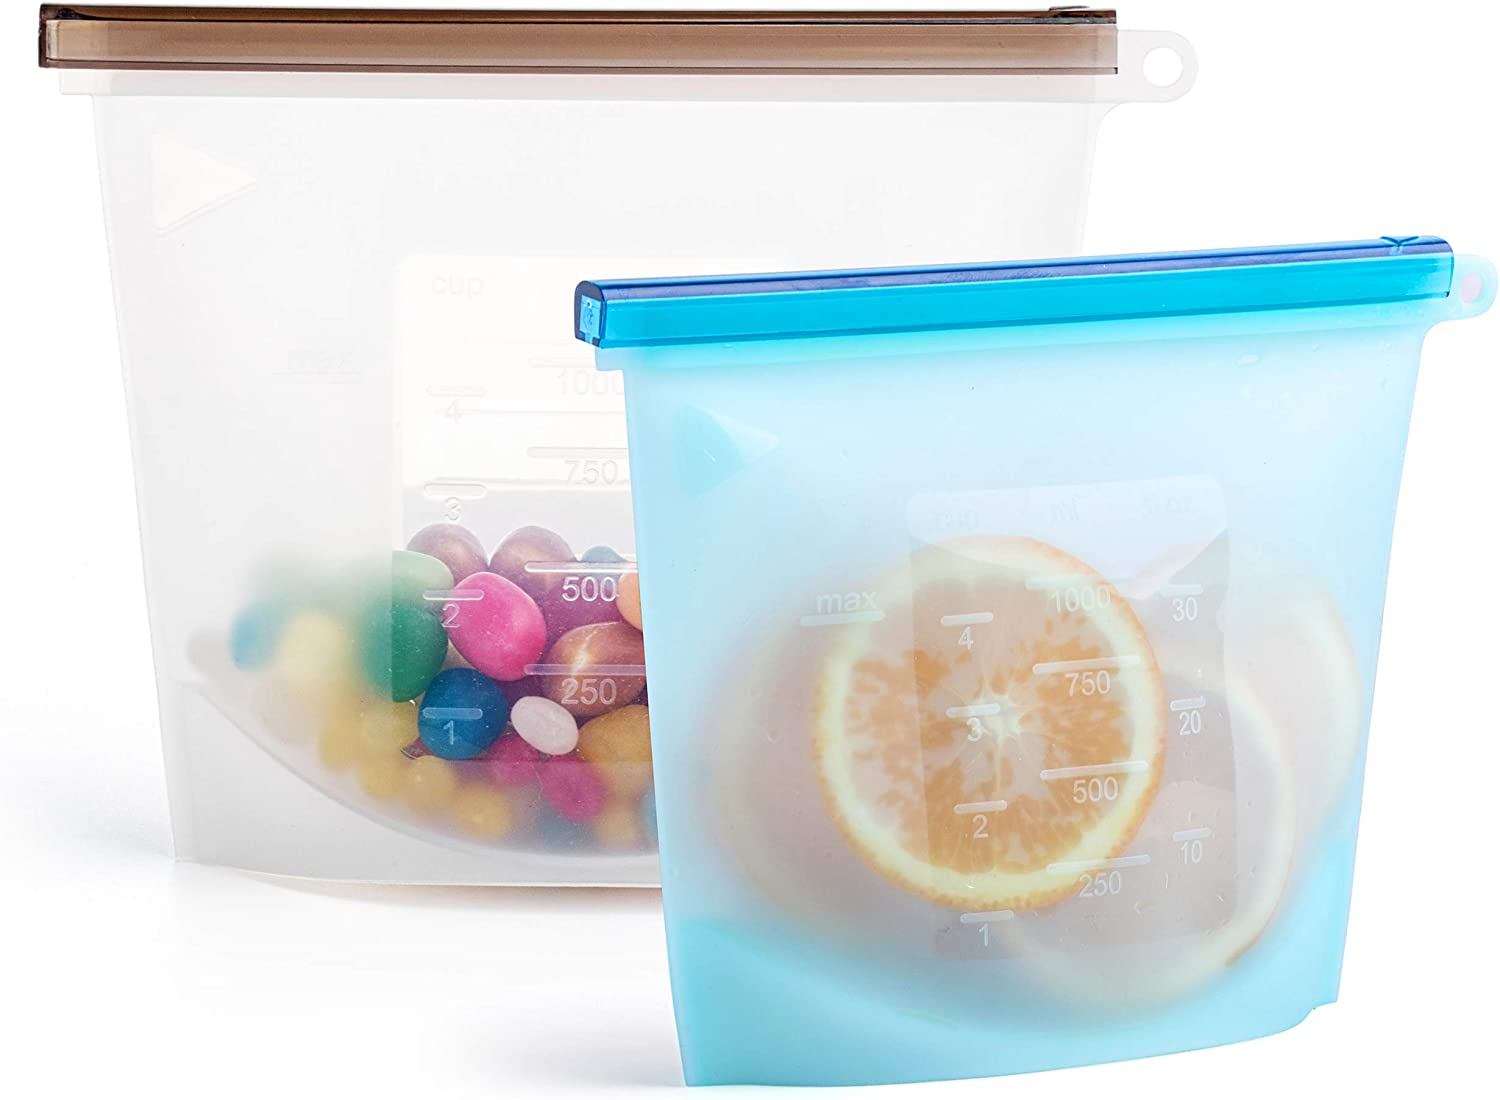 2 Silicone Bags Reusable Silicone Food Bag Reusable Sandwich Bags Reusable Bags Silicone Storage Freezer Containers